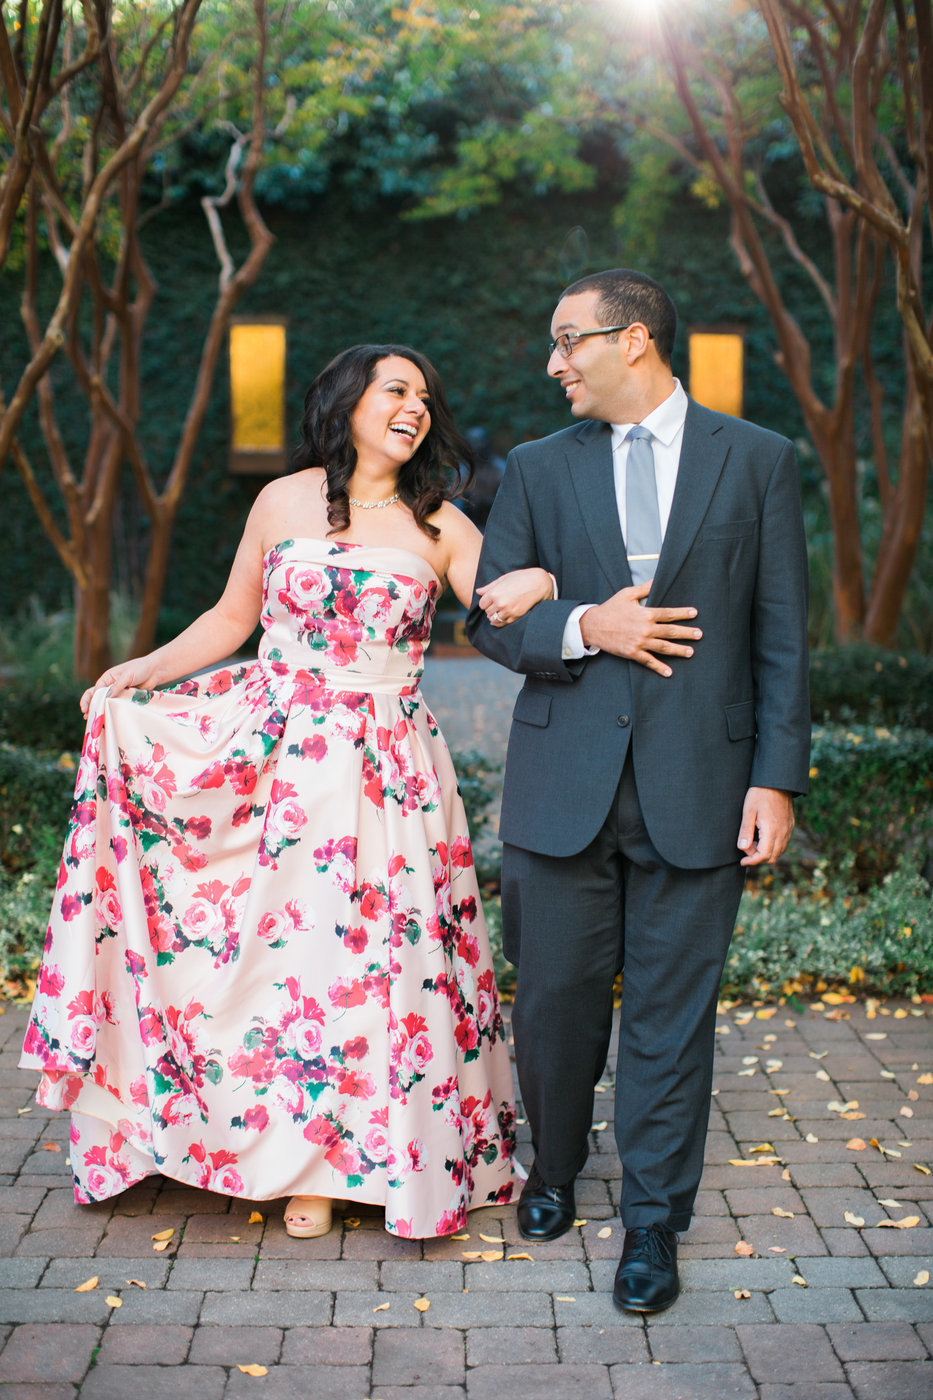 Wedding Photographer, woman in floral dressing walking arm in arm with her man